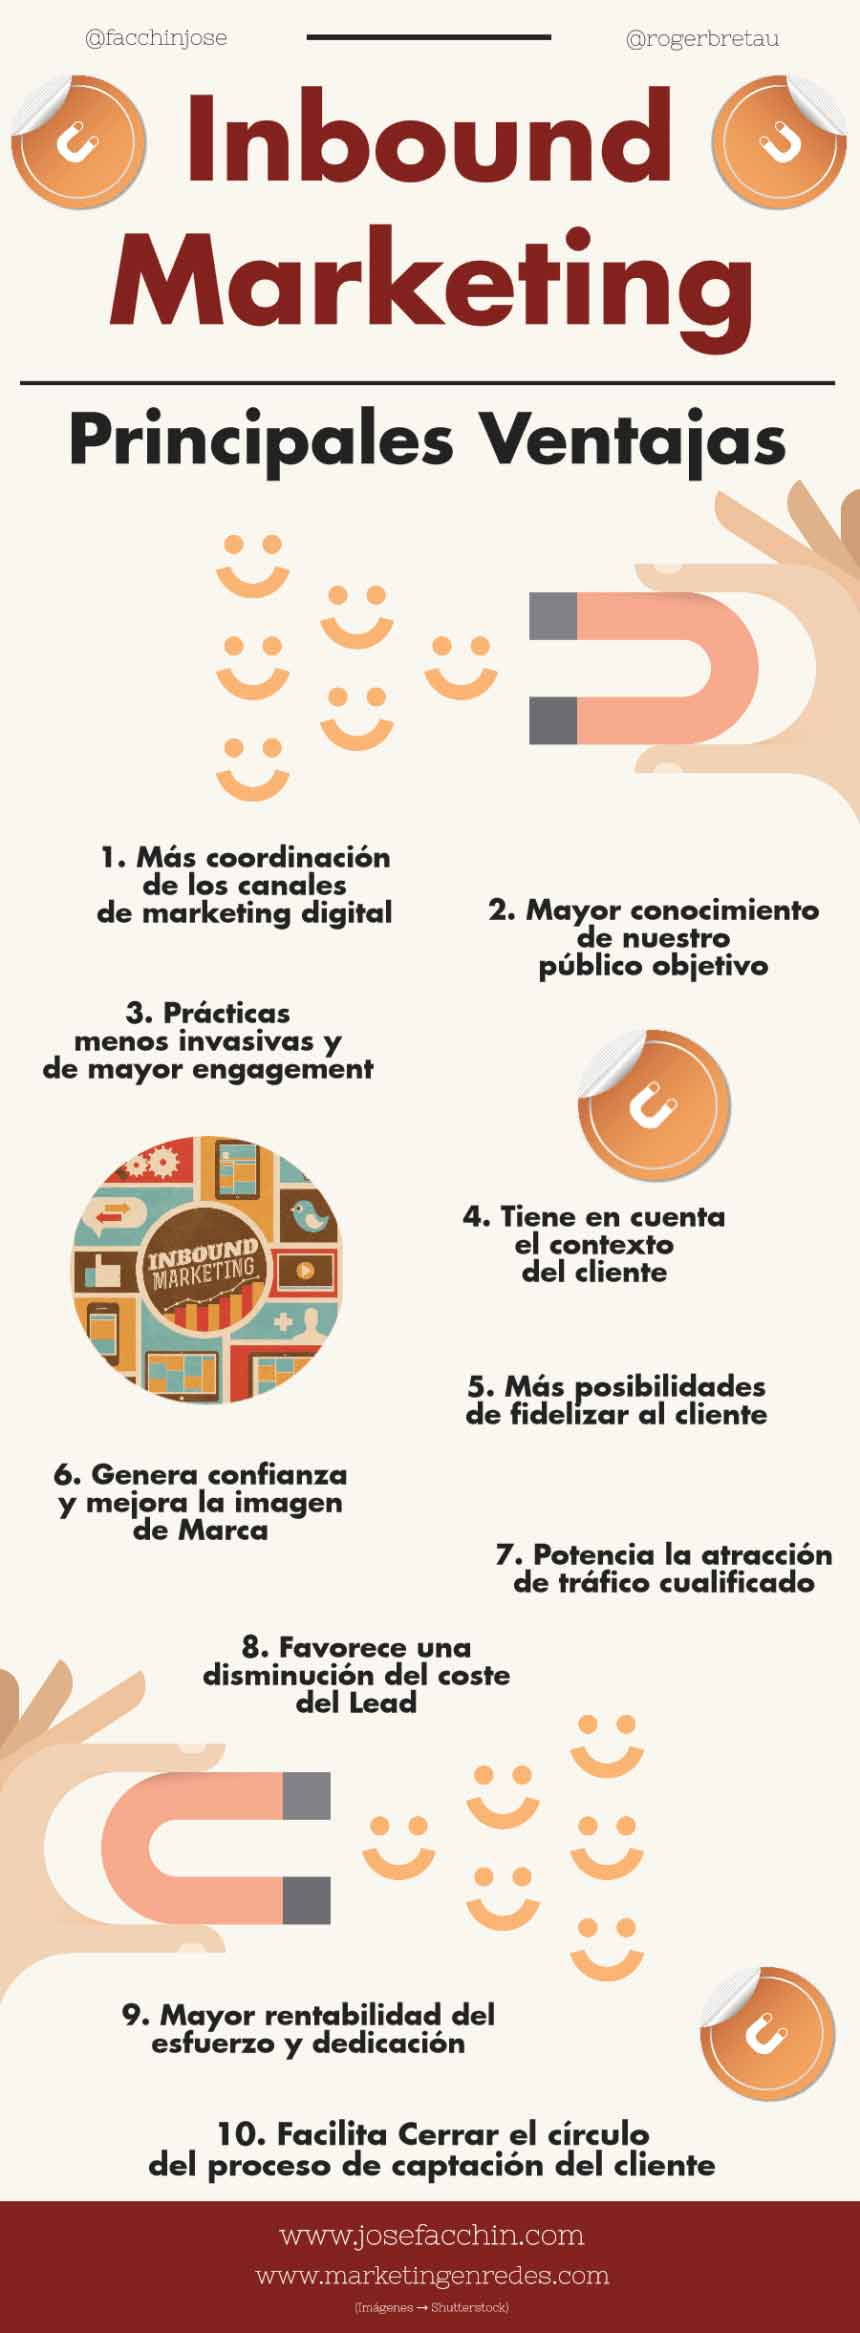 10-ventajas-inbound-marketing-infografia